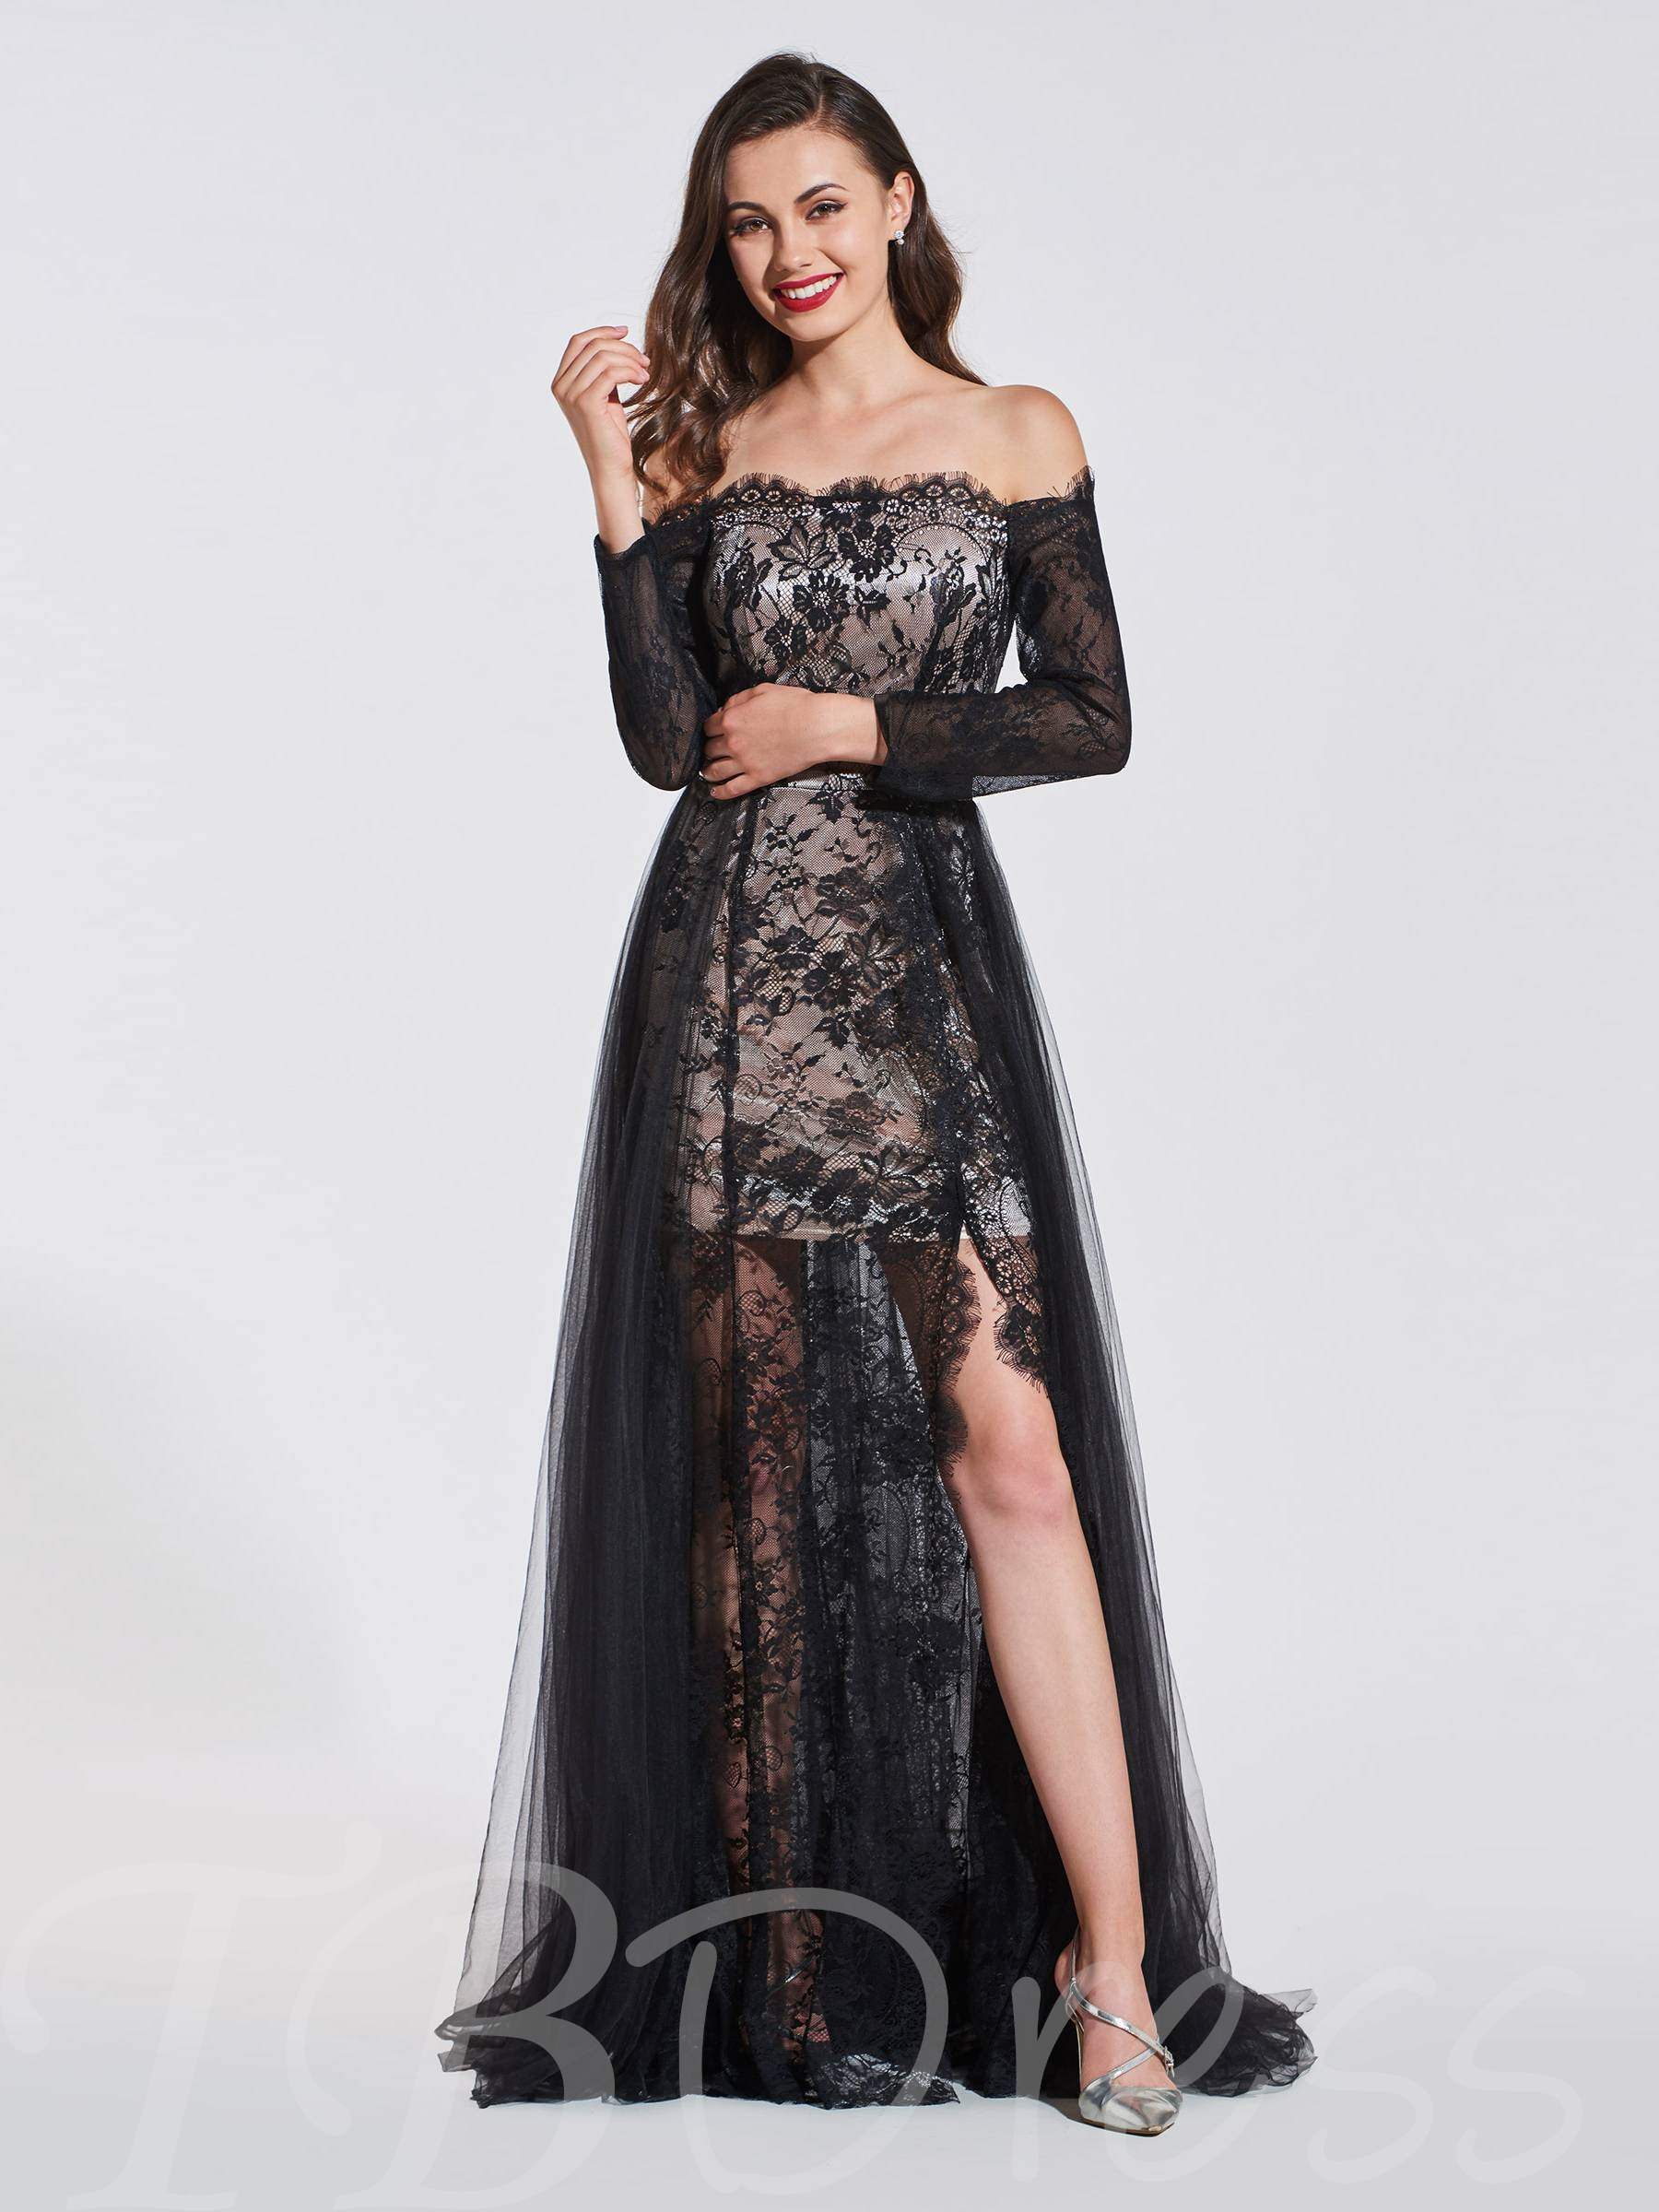 Buy A-Line Lace Split-Front Off-the-Shoulder Evening Dress, Spring,Summer,Fall,Winter, 13372953 for $140.63 in TBDress store